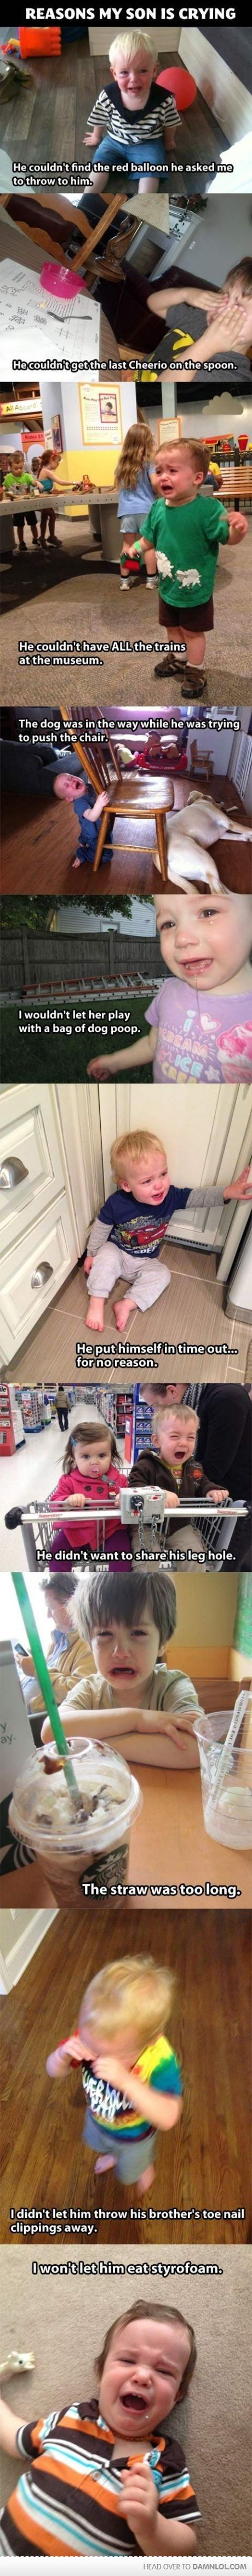 Oh my this is hilarious! My life with a 2 yo!